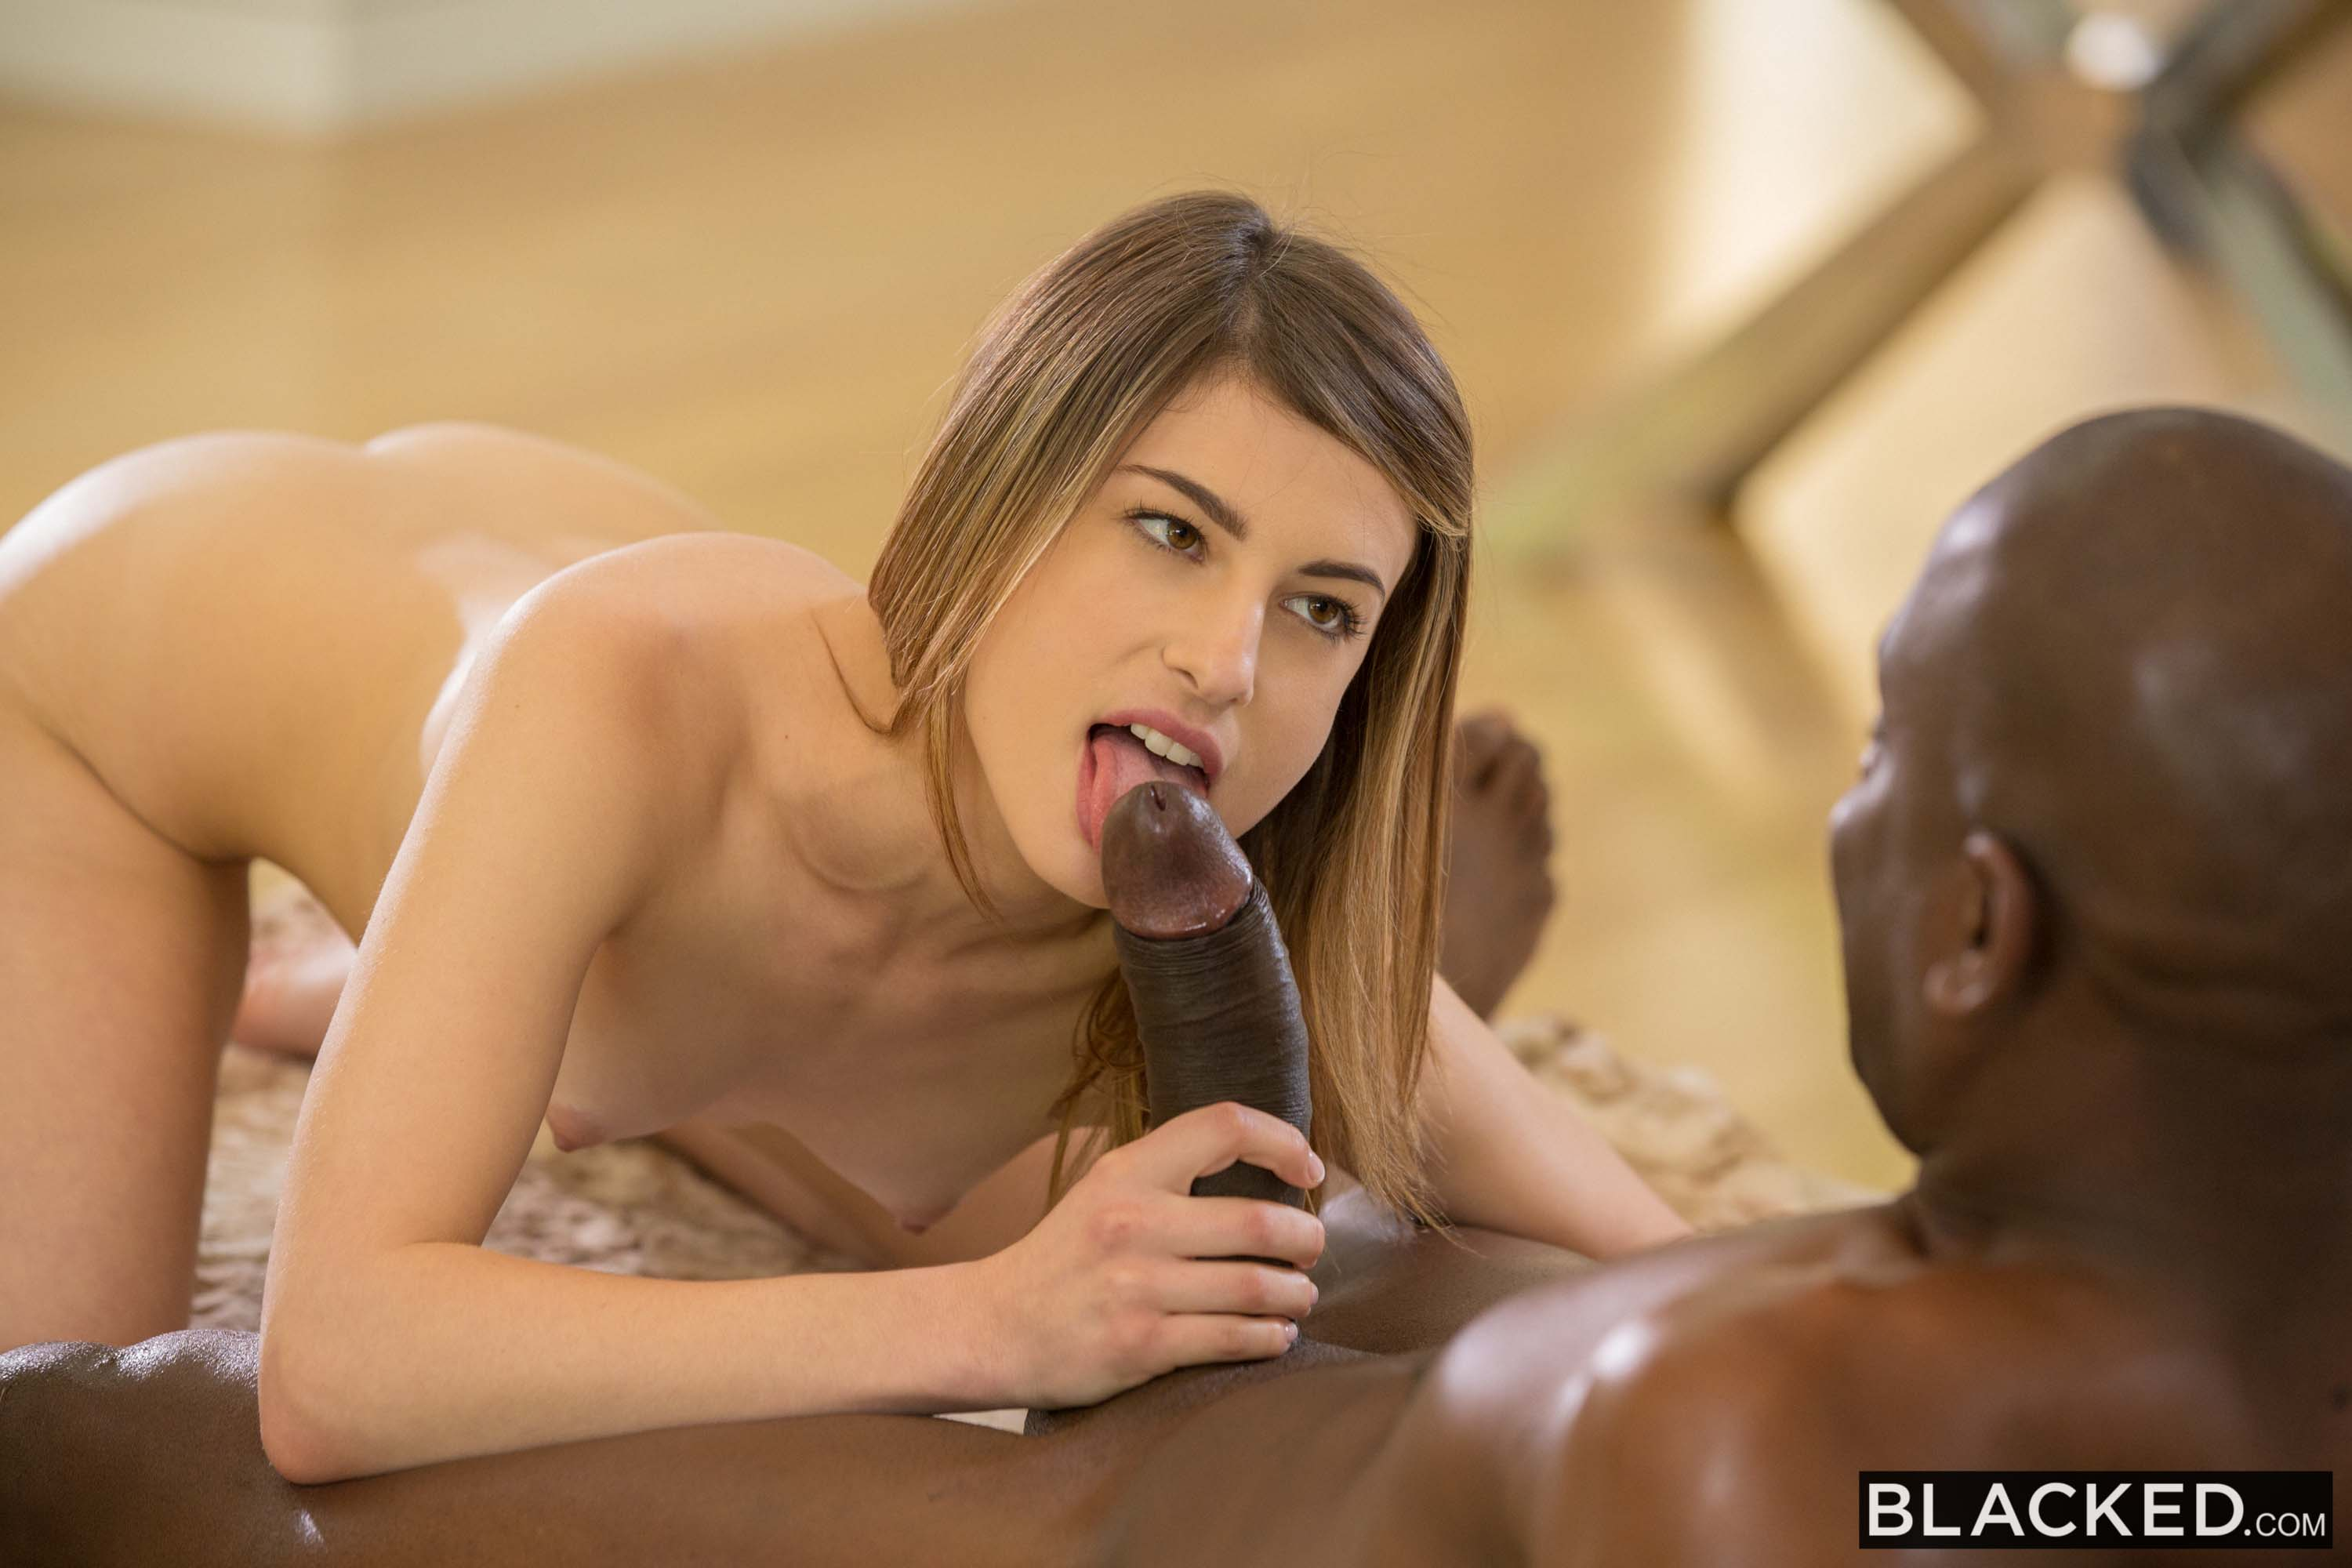 kristen scott blacked